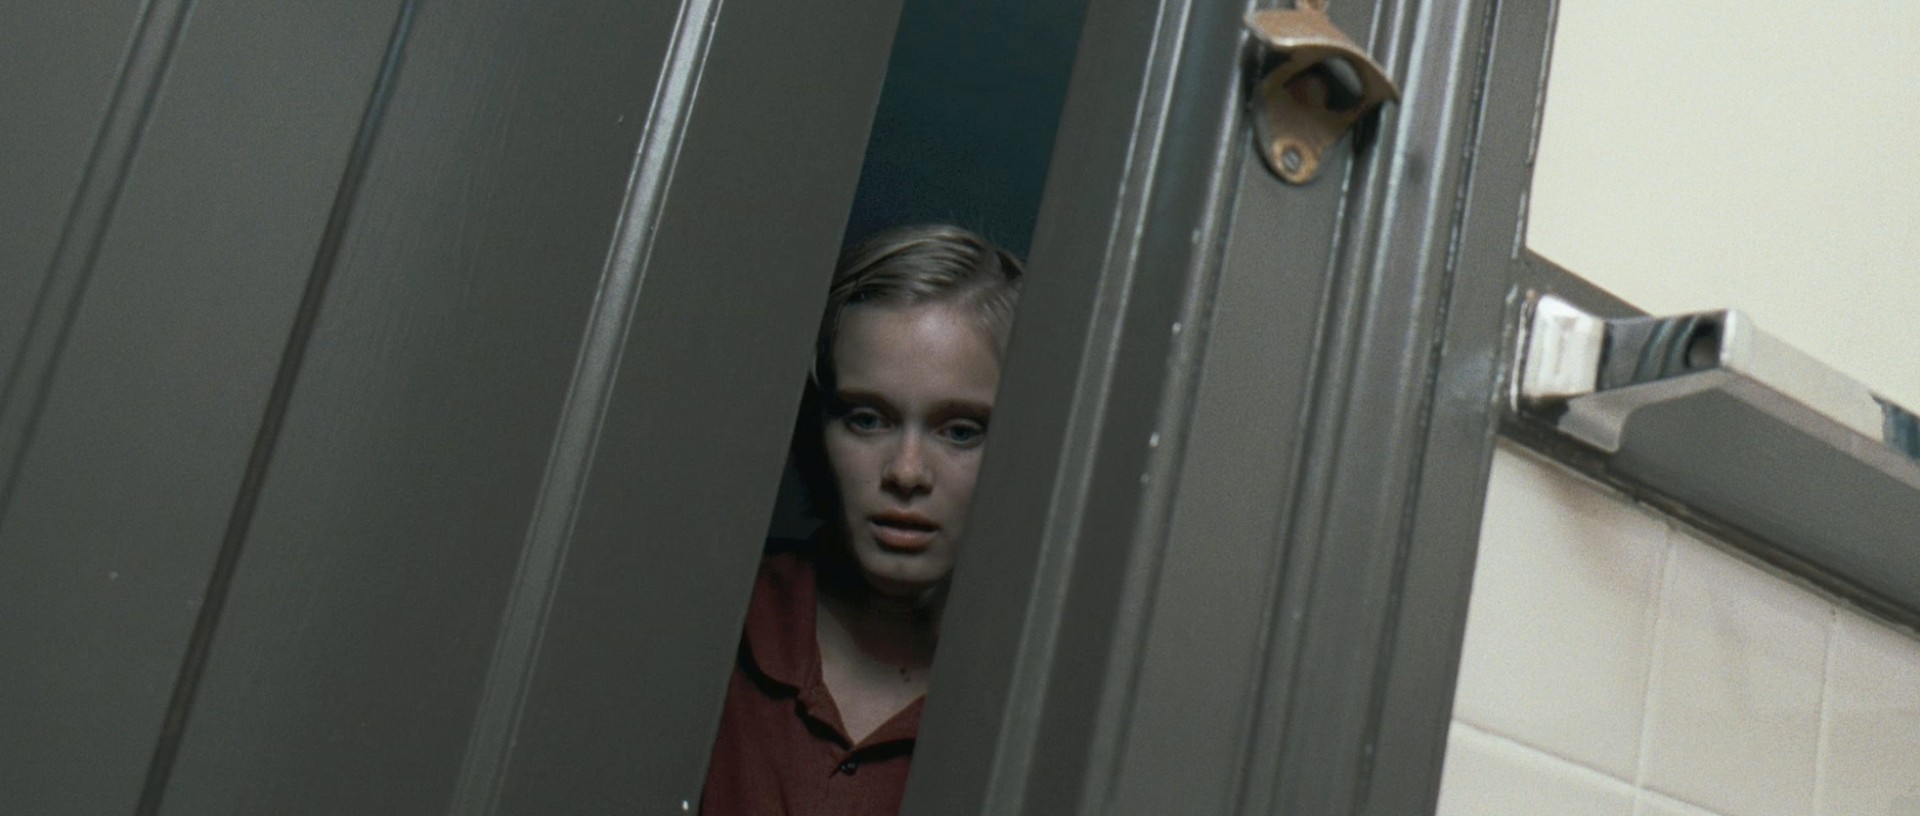 sara paxton as claire in the innkeepers 2011 In 2011, The Innkeepers Explored Millennial Depression